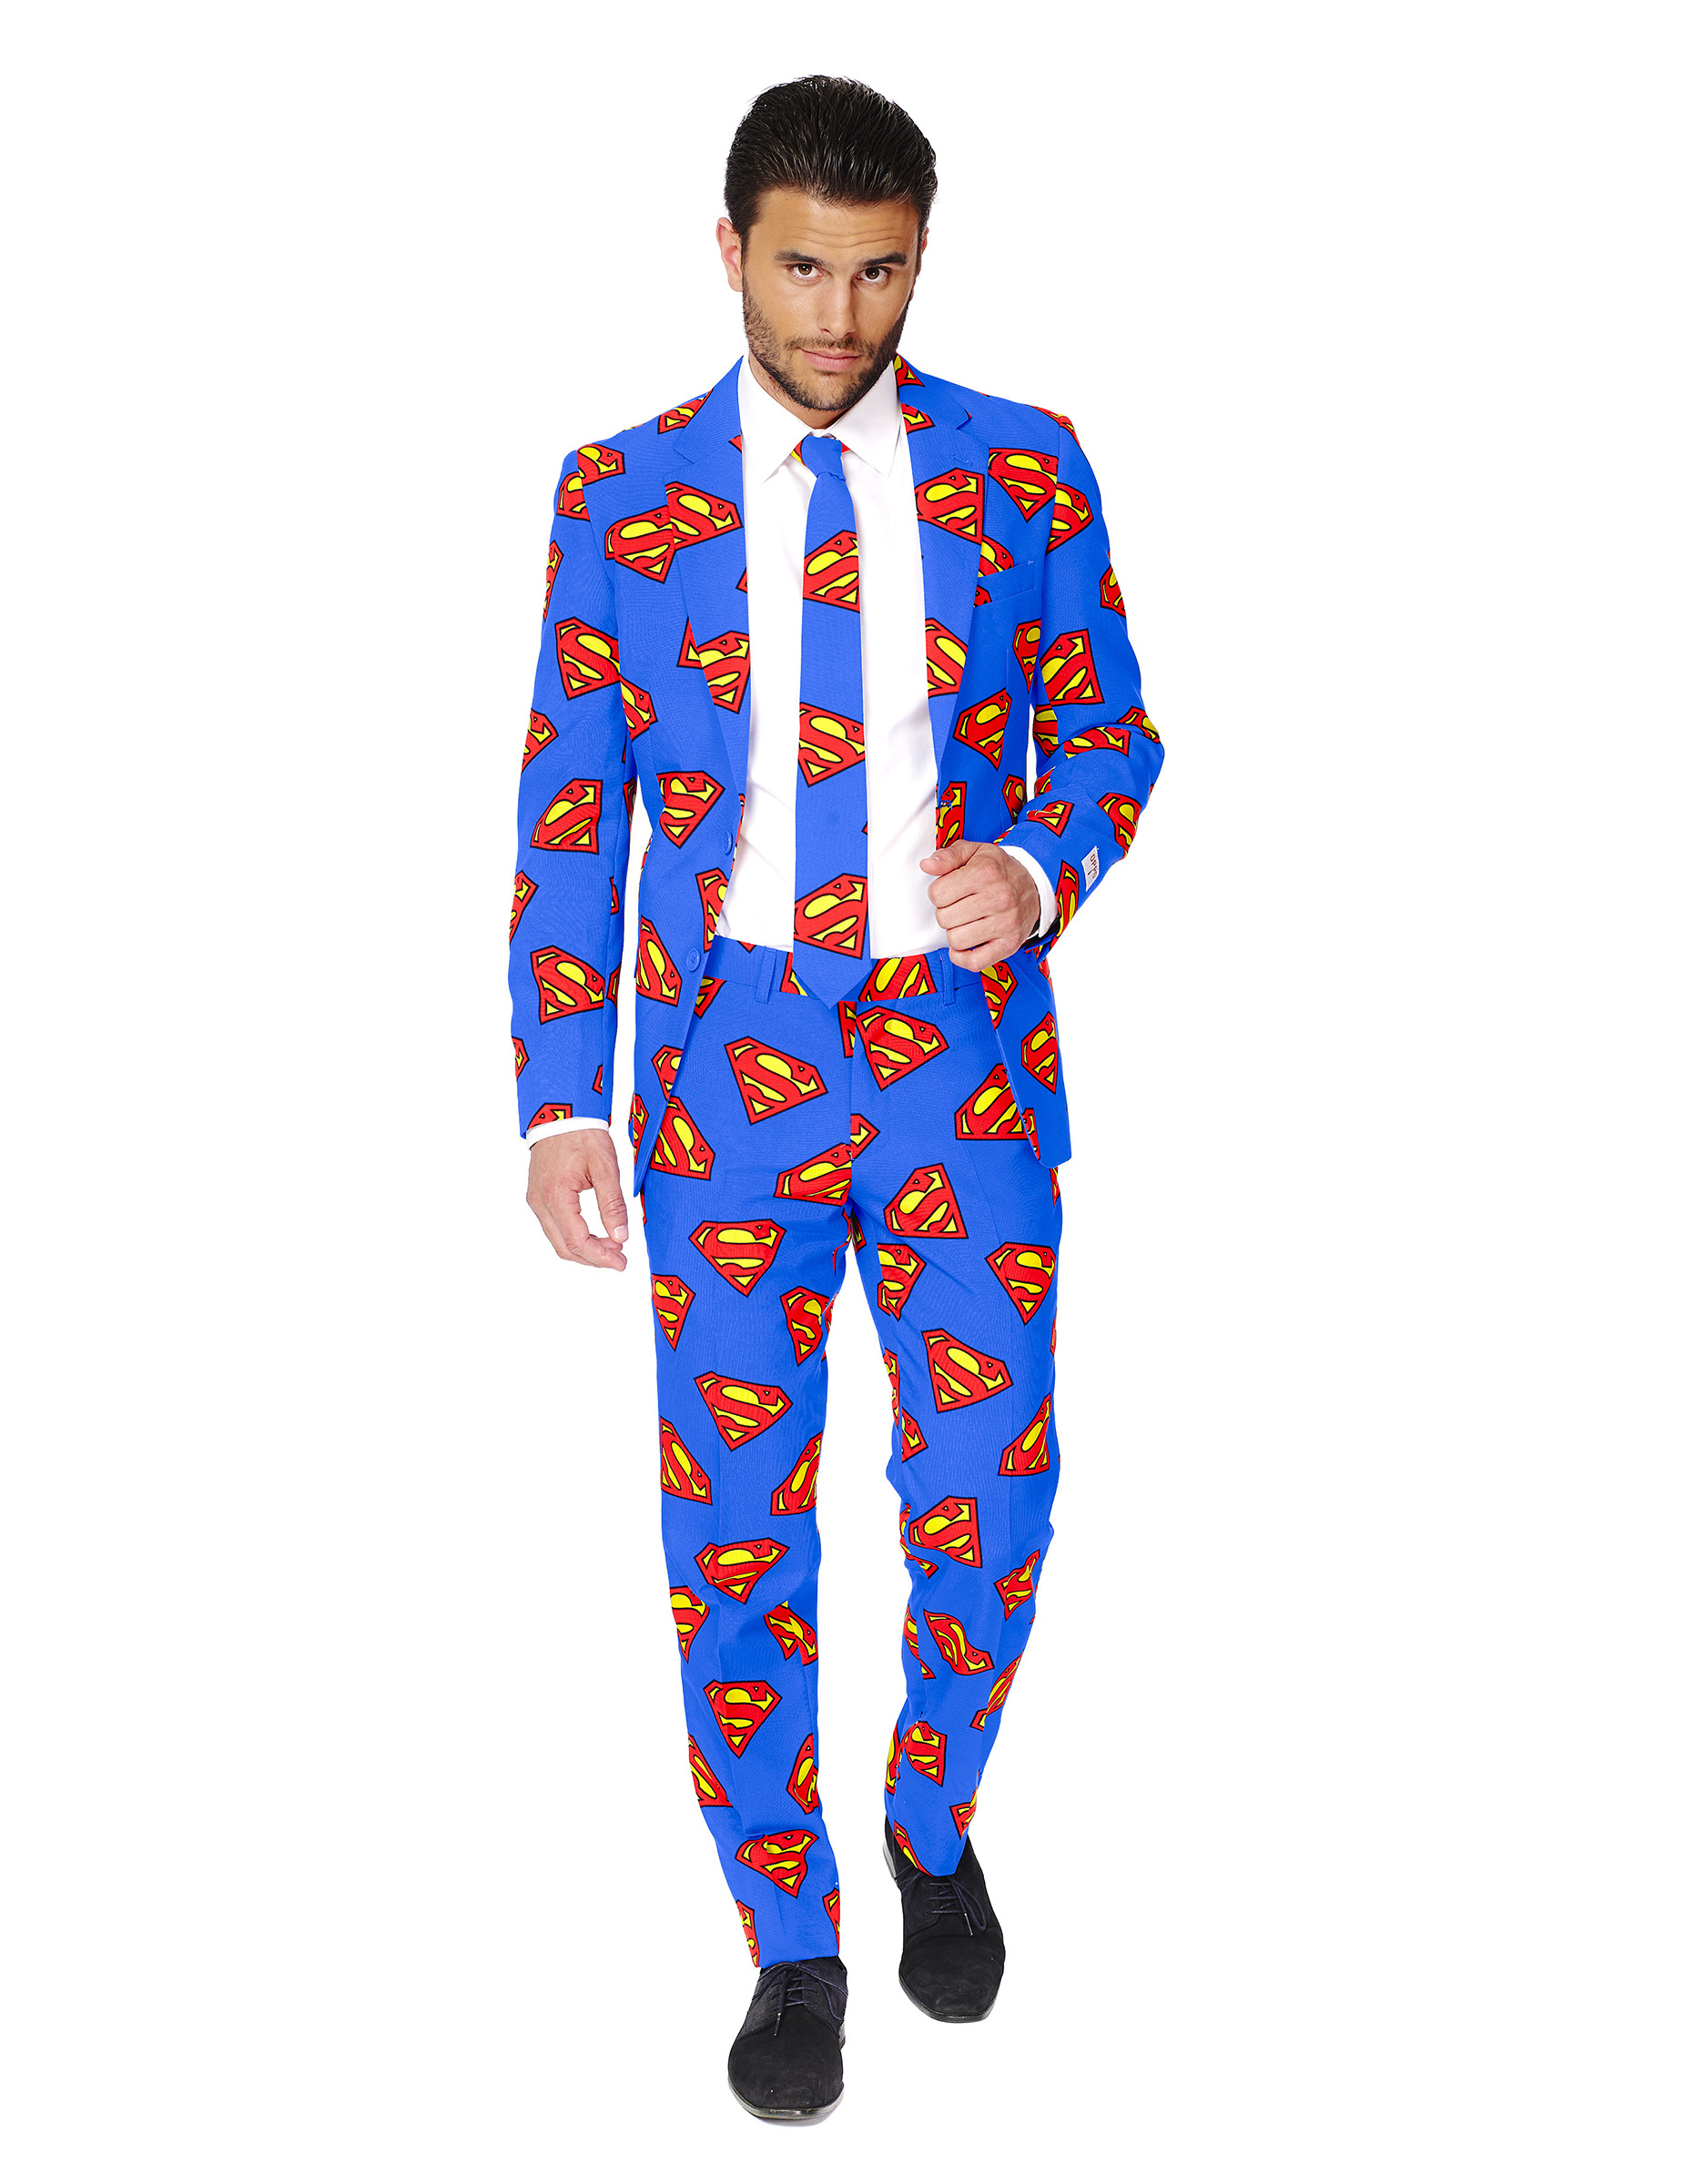 costume mr superman homme opposuits deguise toi achat de d guisements adultes. Black Bedroom Furniture Sets. Home Design Ideas